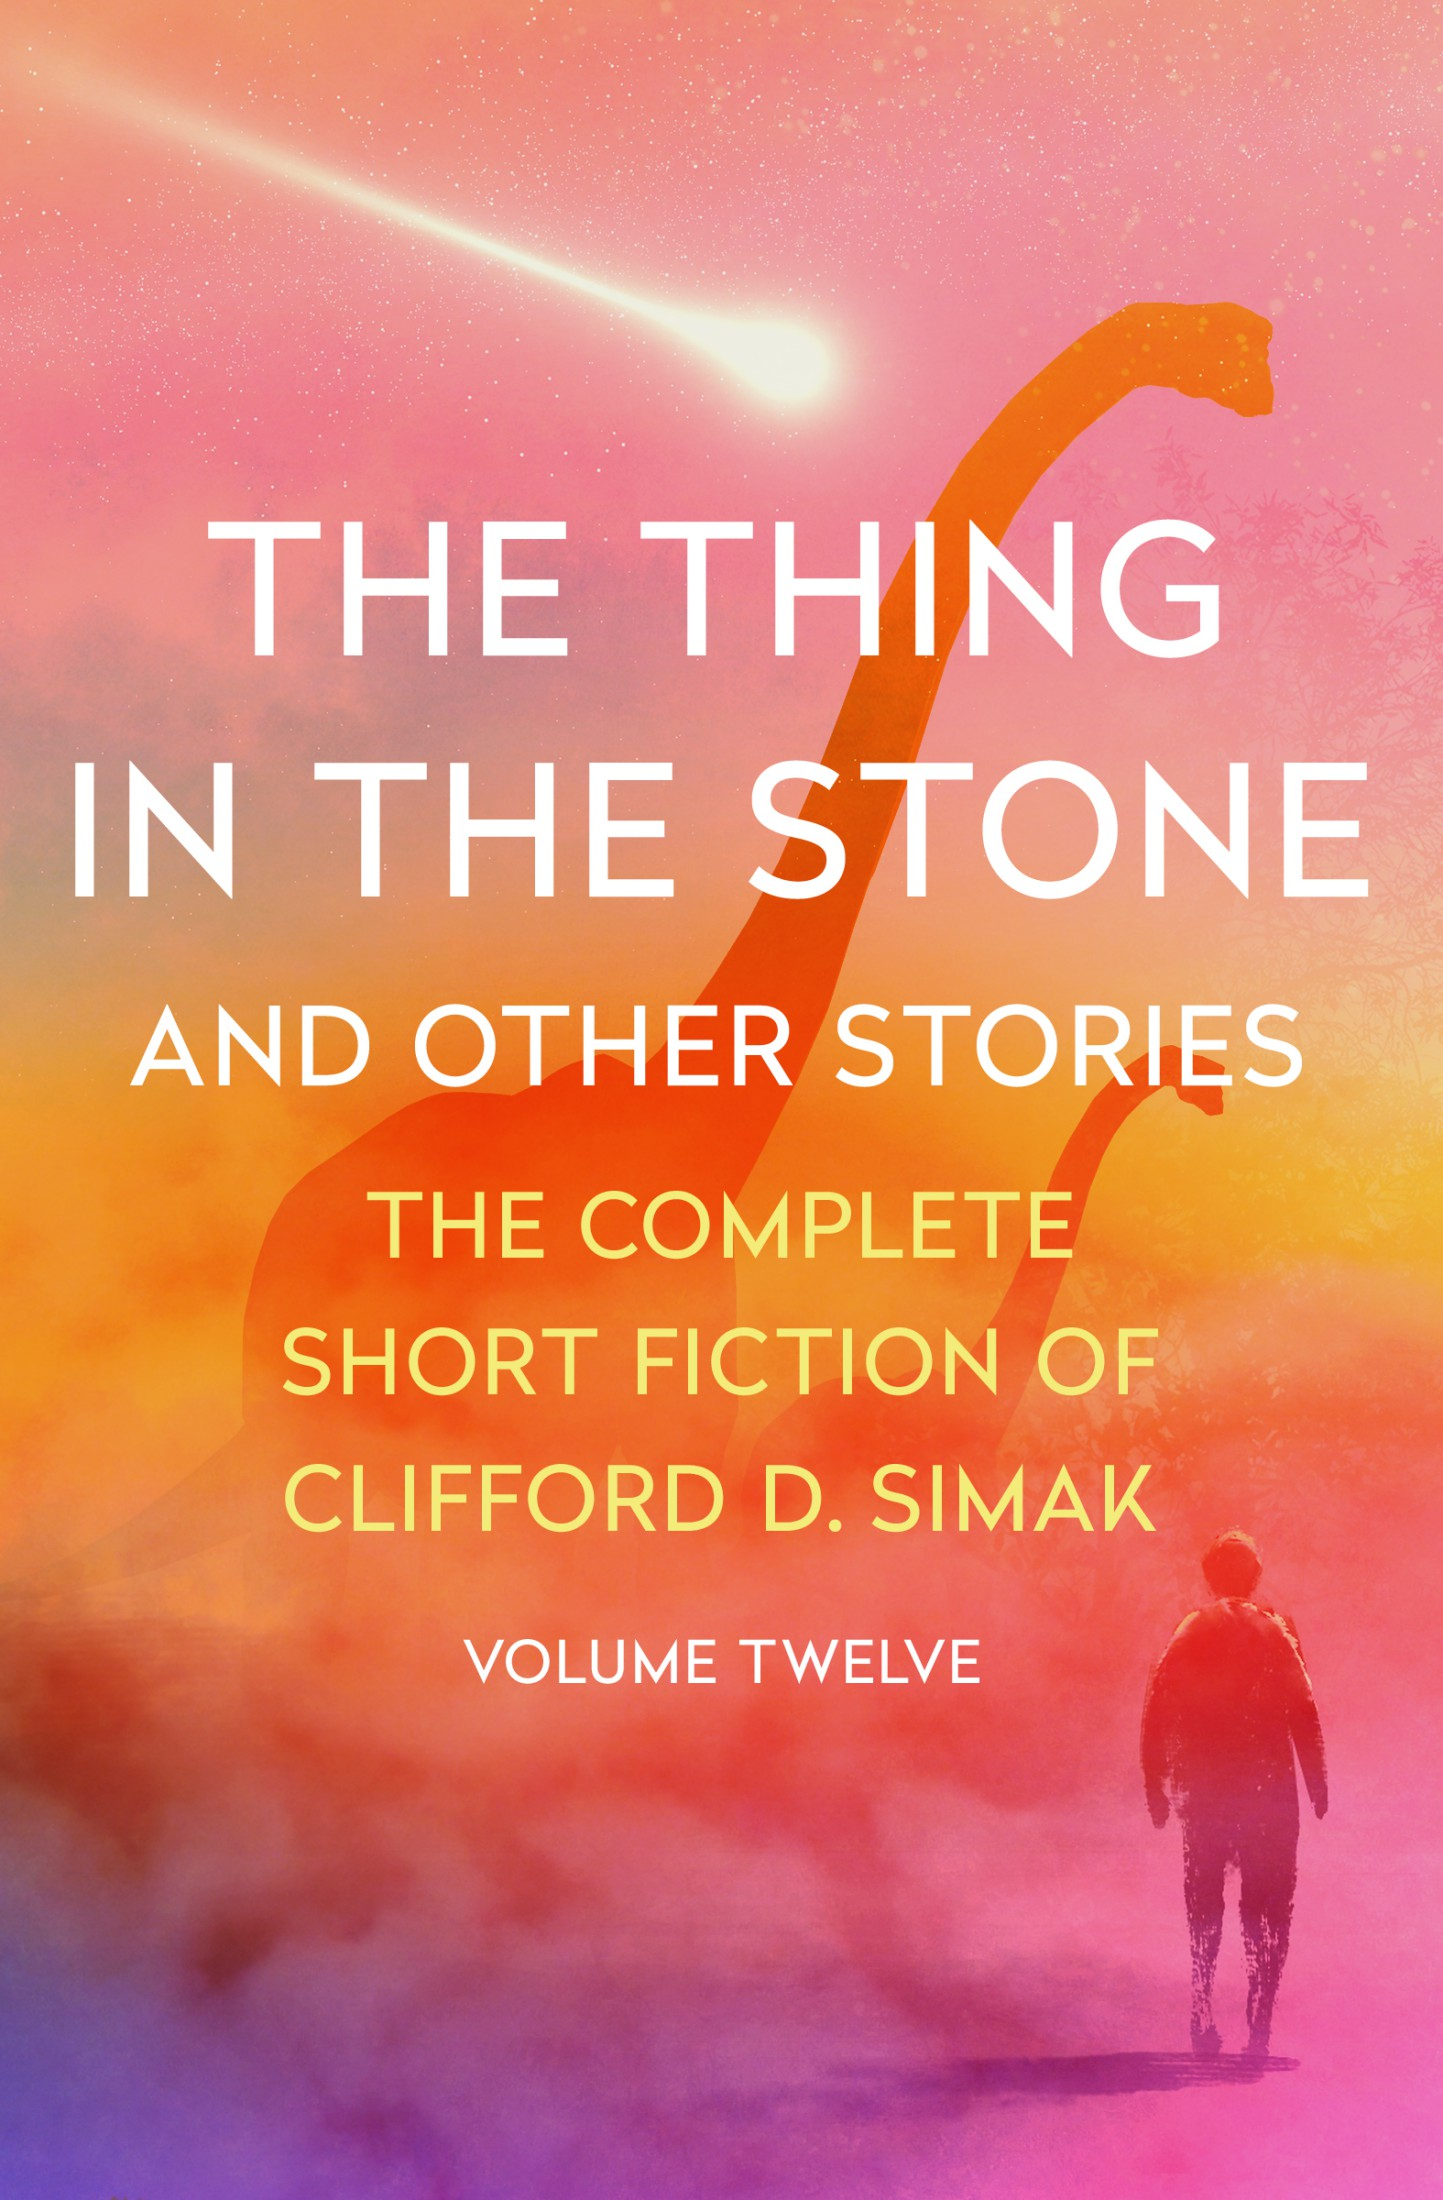 The Thing in the Stone